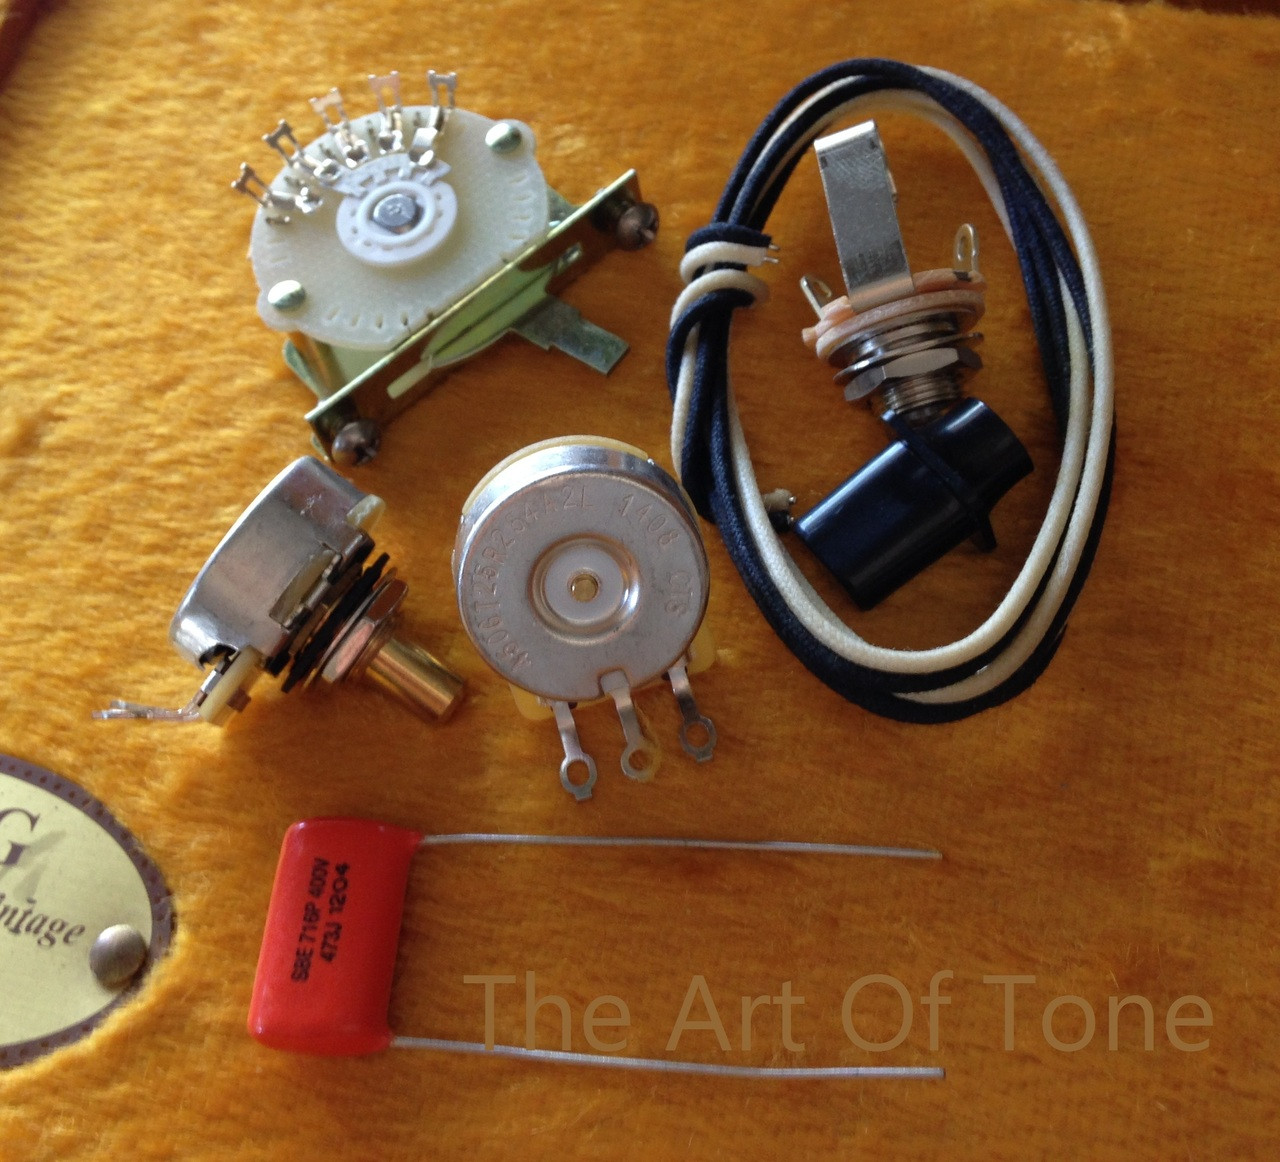 Basic Wiring Kit For Telecaster Guitars Image 5 Way Switch Diagram Download Deluxe Tele 4 Cts 450g Pots 047uf Orange Drop Cap